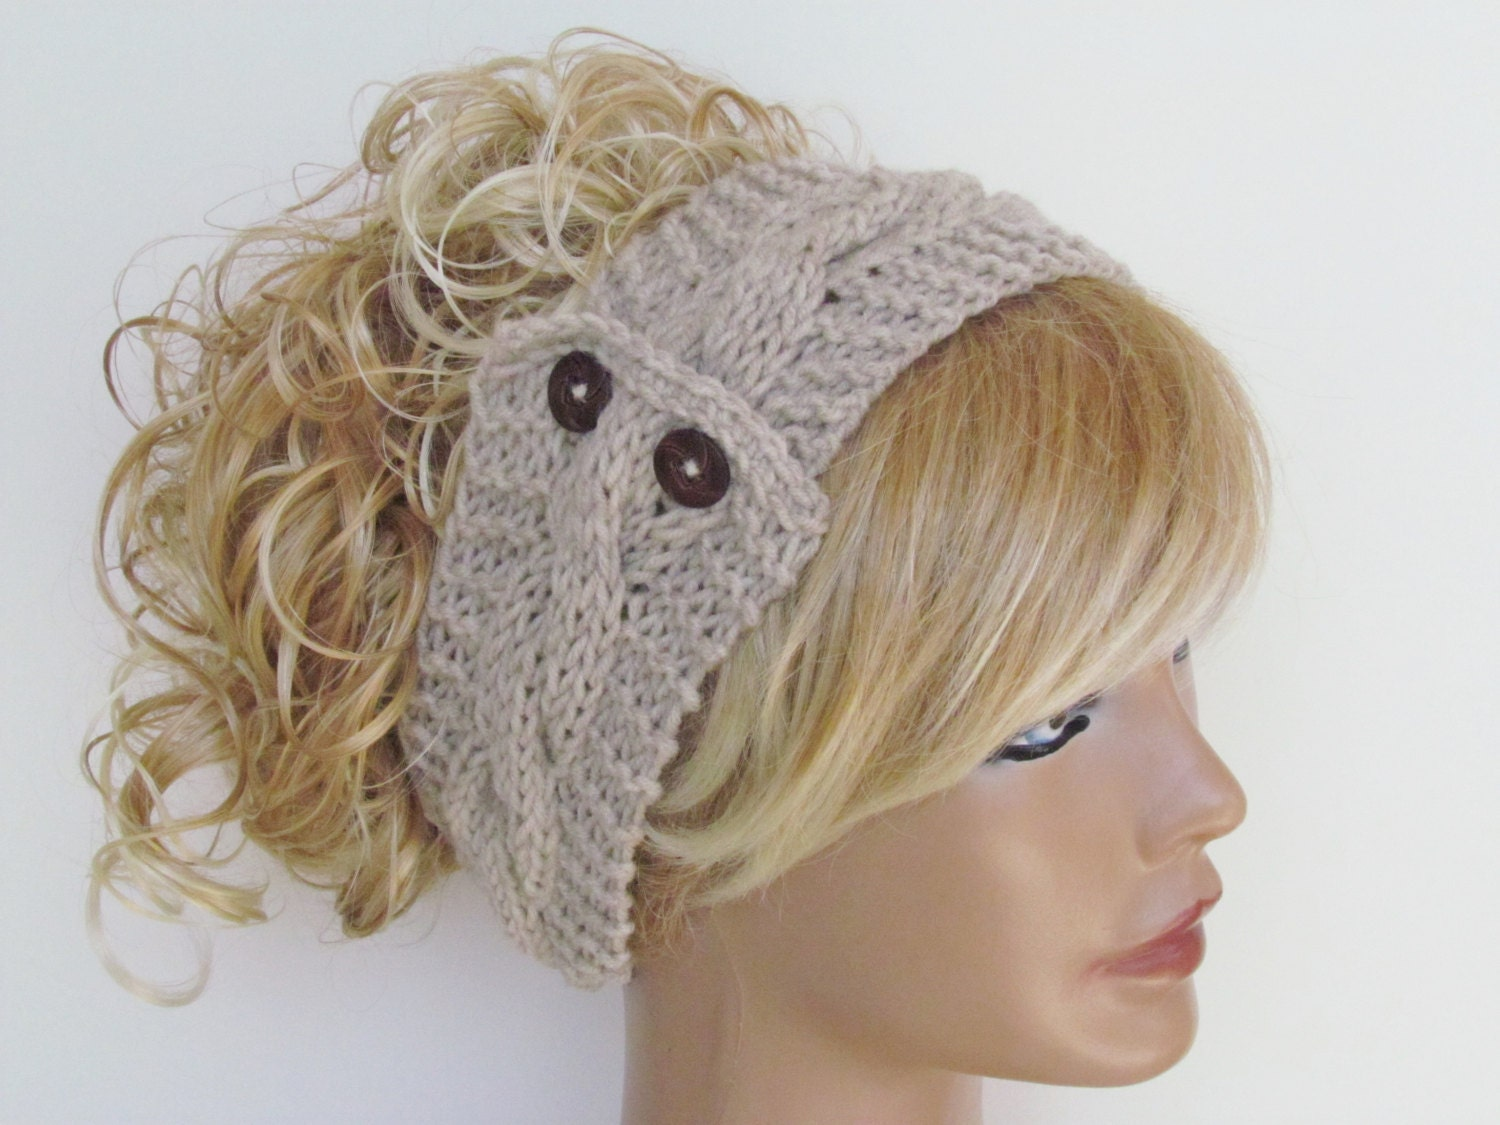 Stone Knitted Headband With Wooden Buttons Ear by COLORFULHAIR